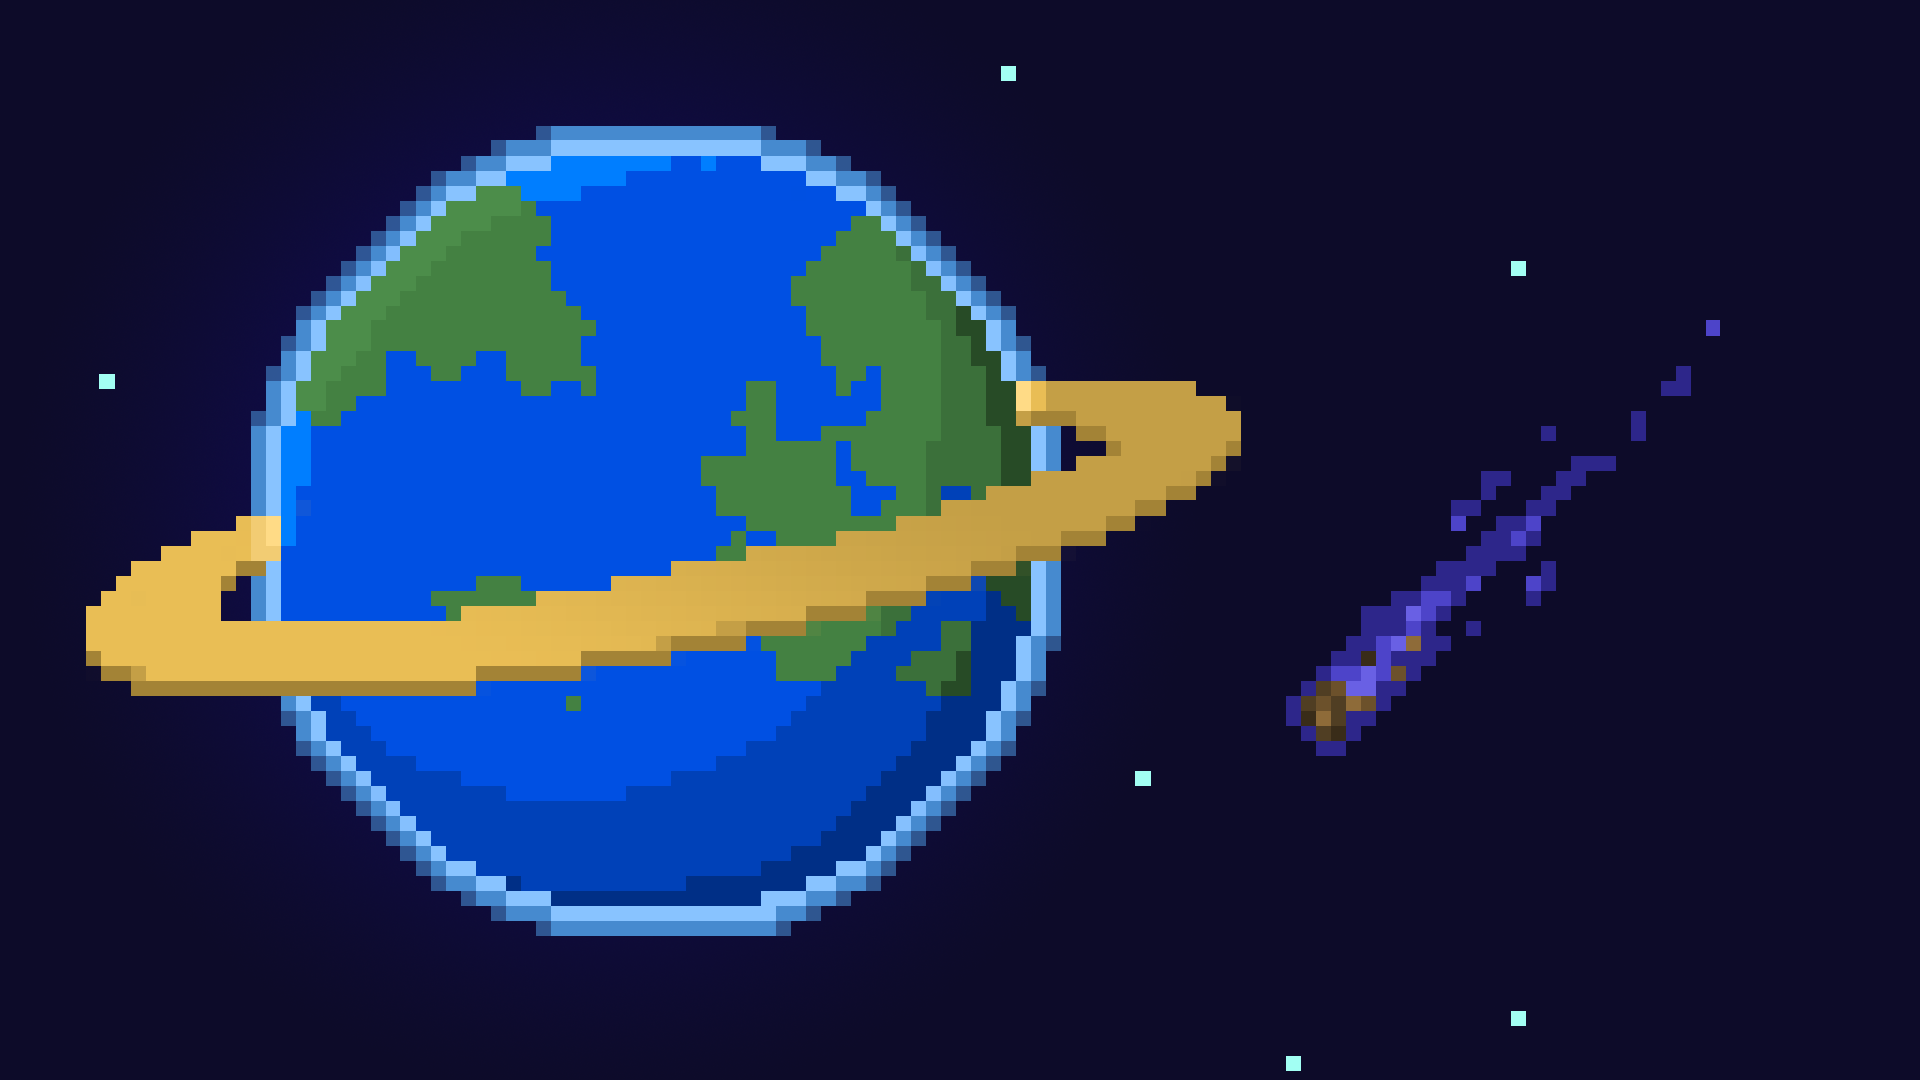 General 1920x1080 pixel art pixelated pixels digital art space universe planet stars planetary rings Earth comet blue background